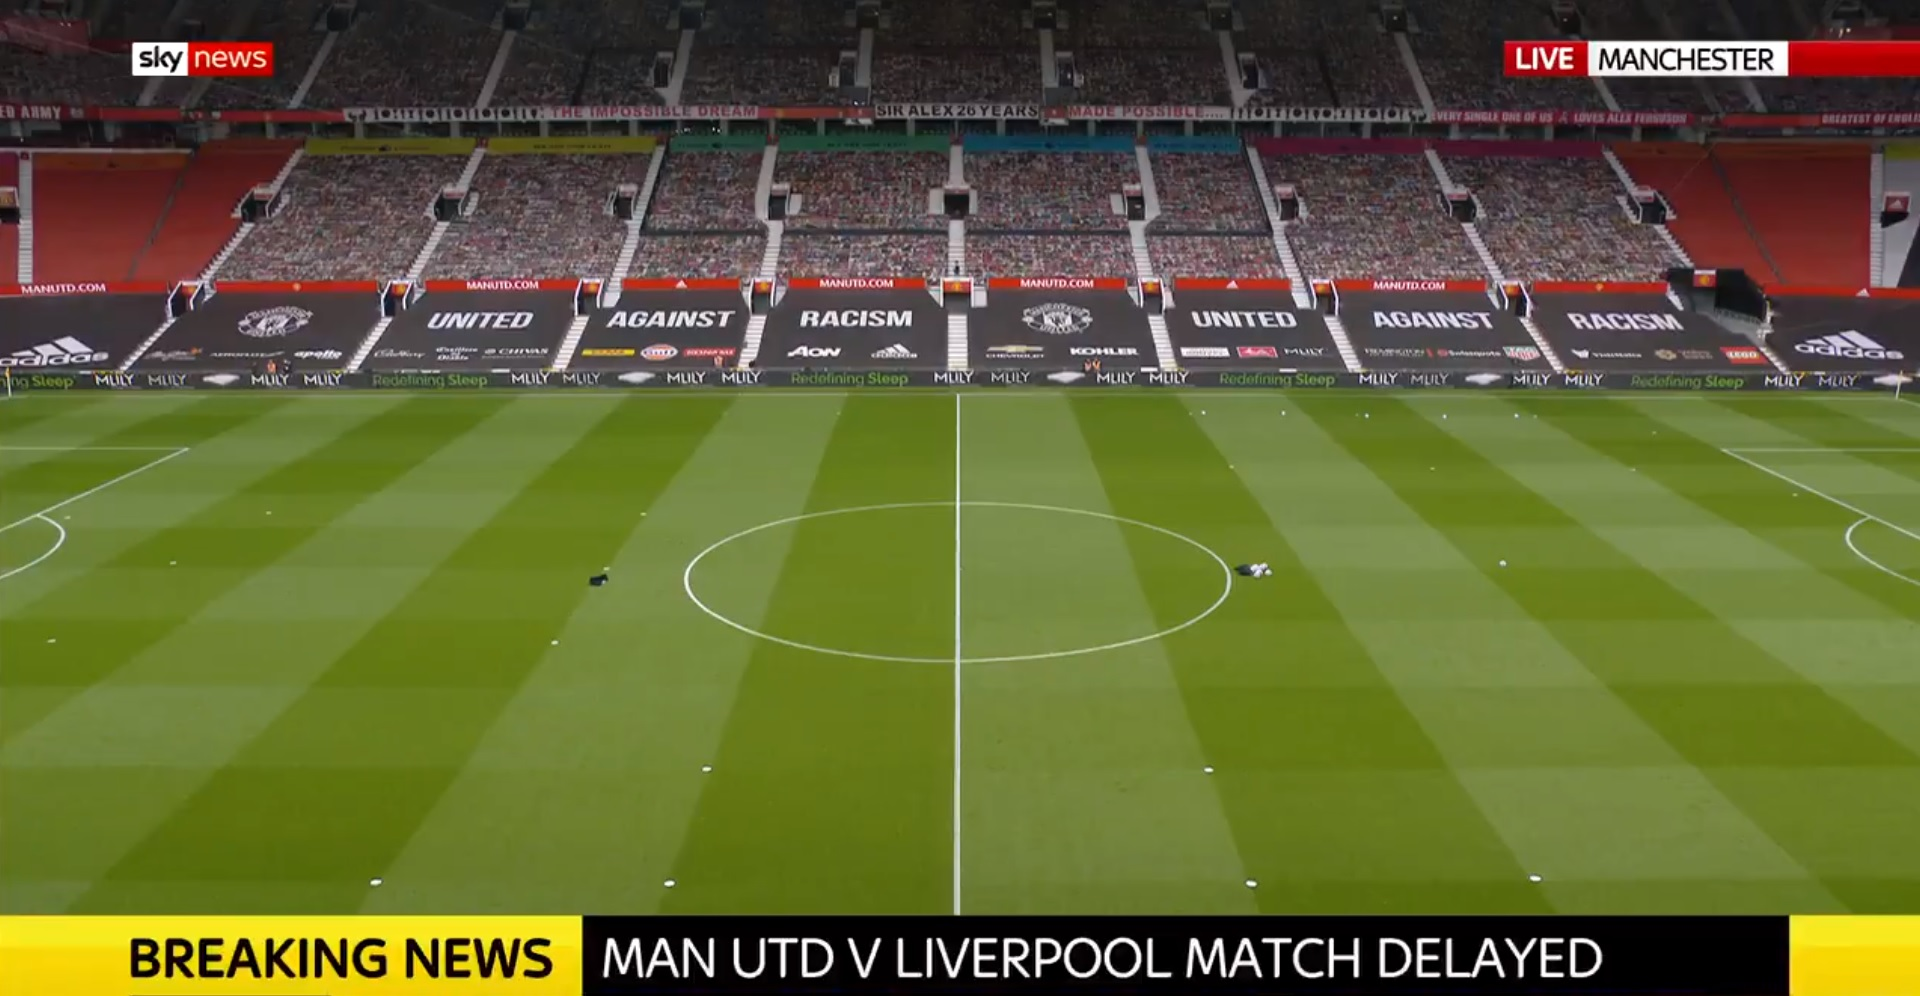 Manchester United could force Liverpool to wait for fixture reschedule